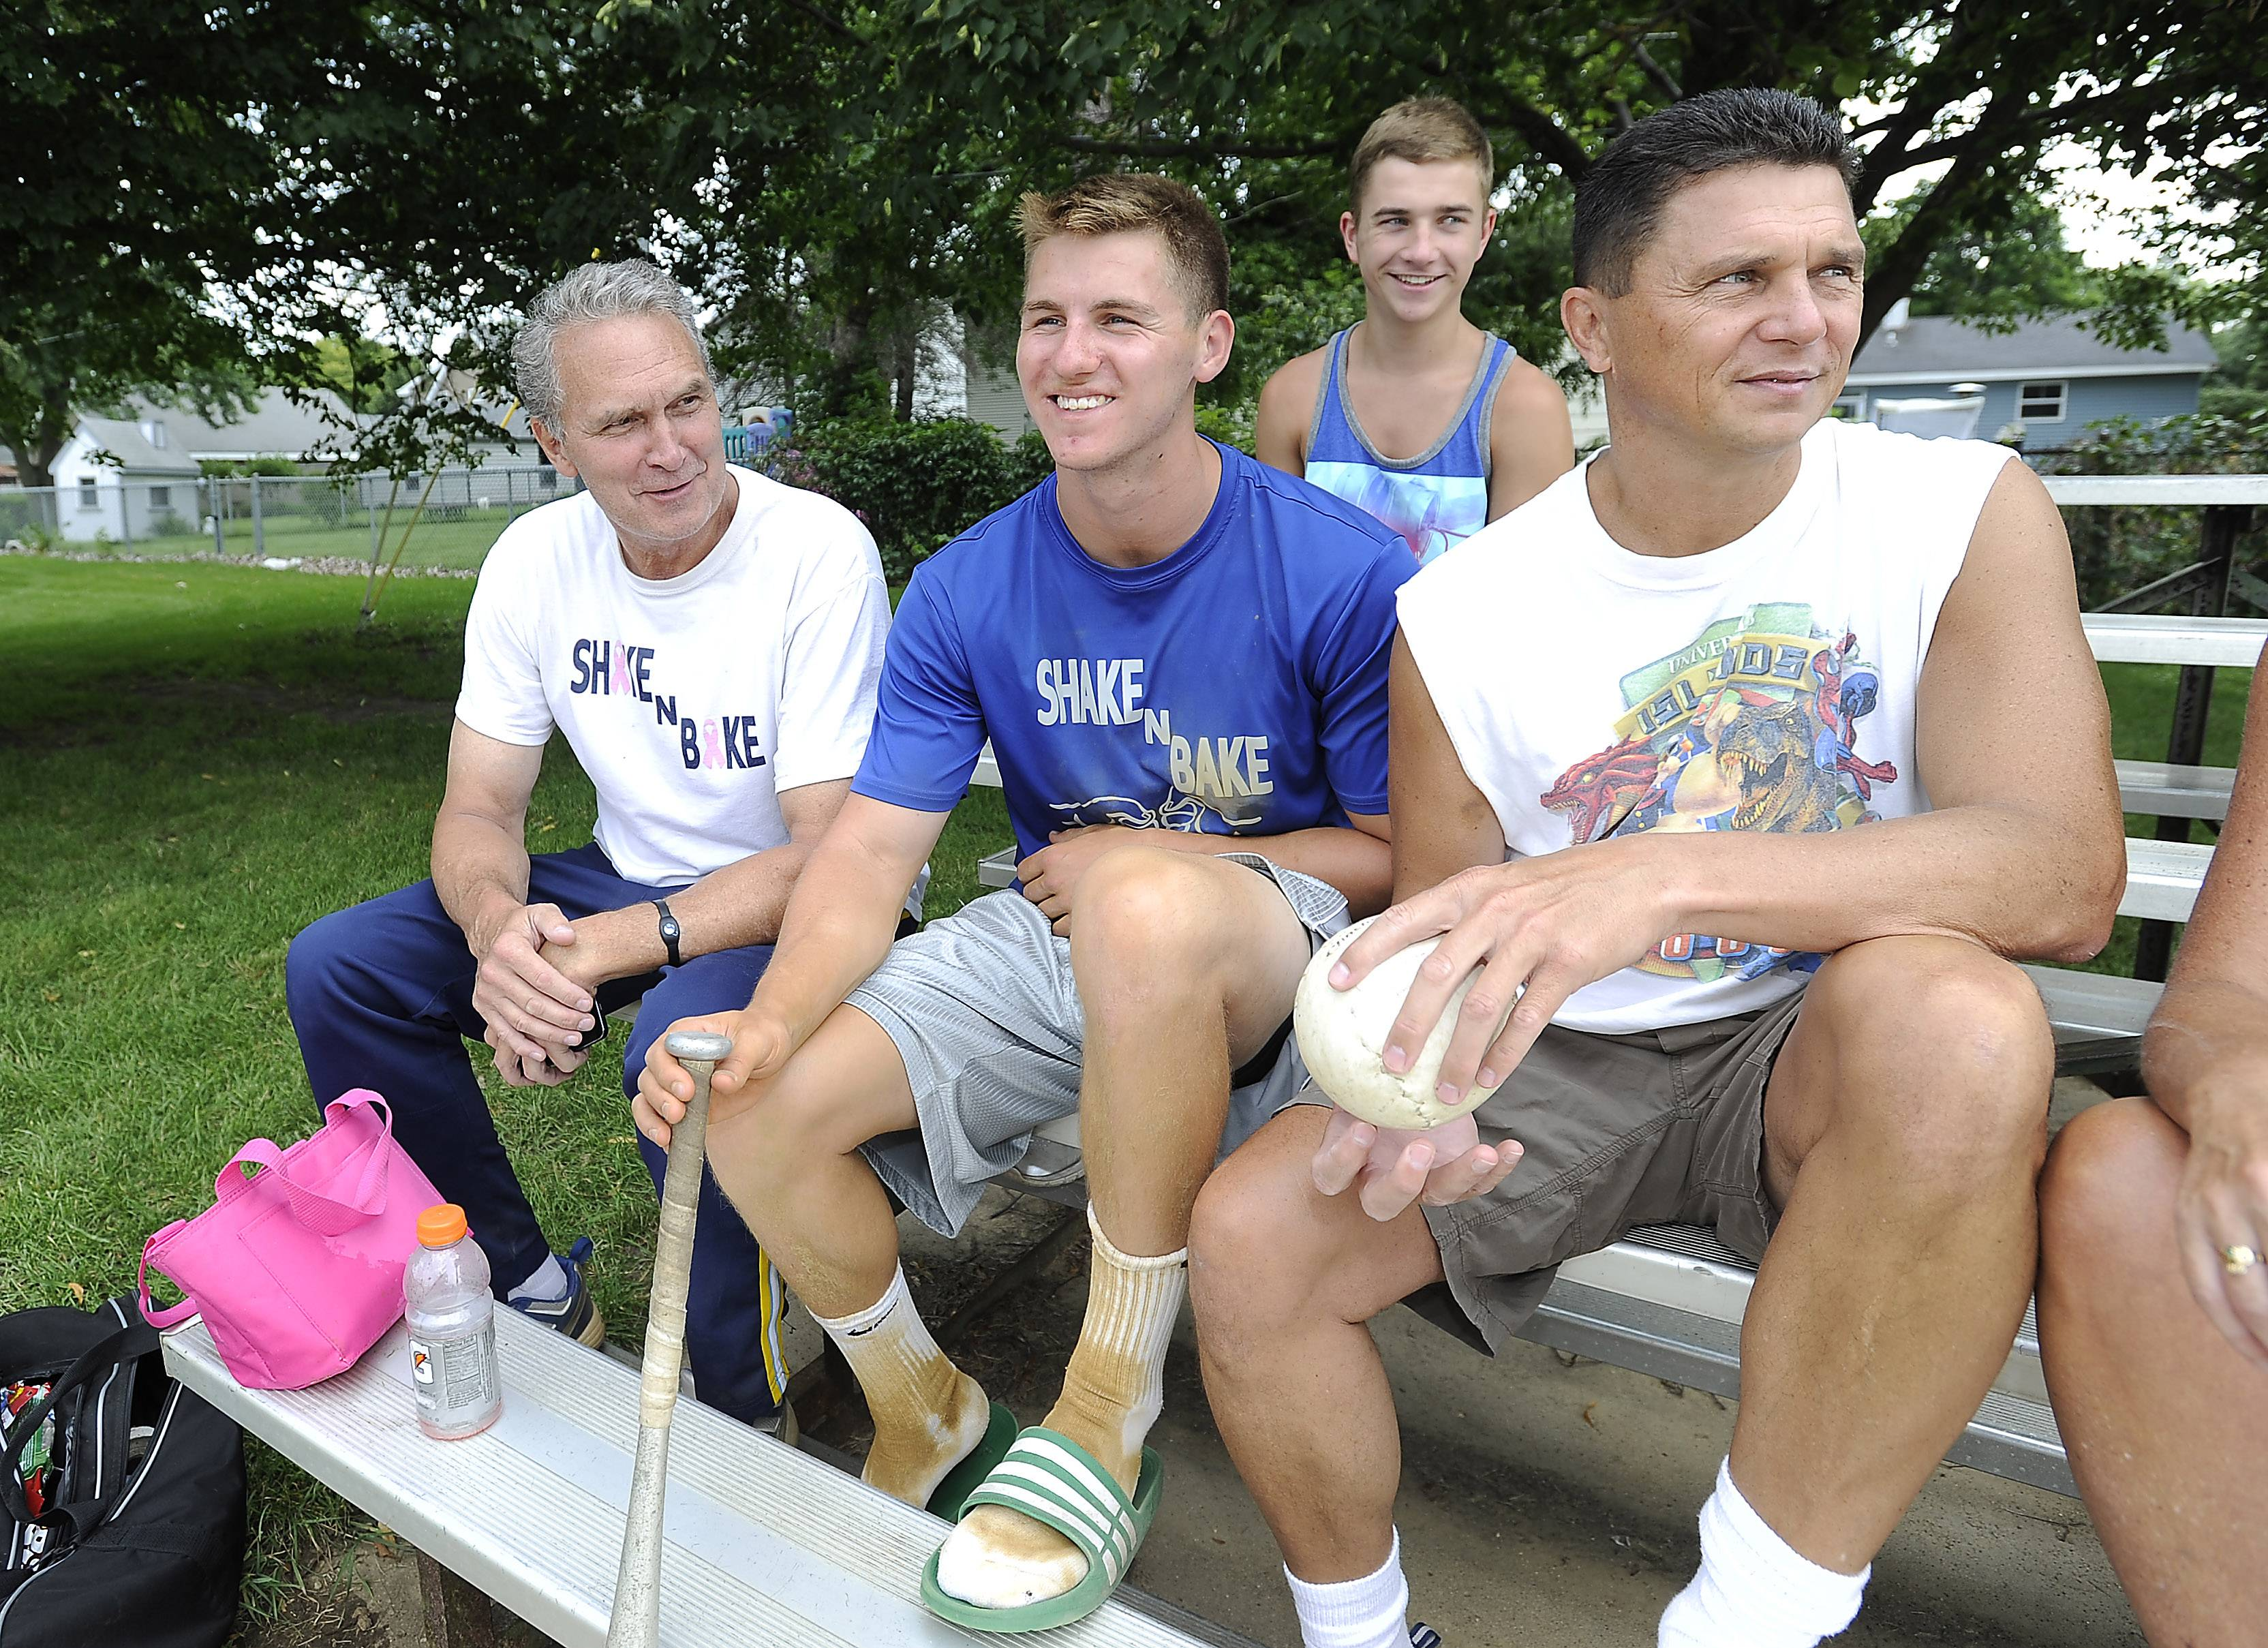 Patrick Moran, 21, middle, who is Terry Moran's son, hangs out with friends Tim Decker of Elk Grove, and Tony Prochenski of Des Plaines, between playing softball games at the 19th annual Terry Moran Memorial Softball Tournament in Rolling Meadows on Saturday.